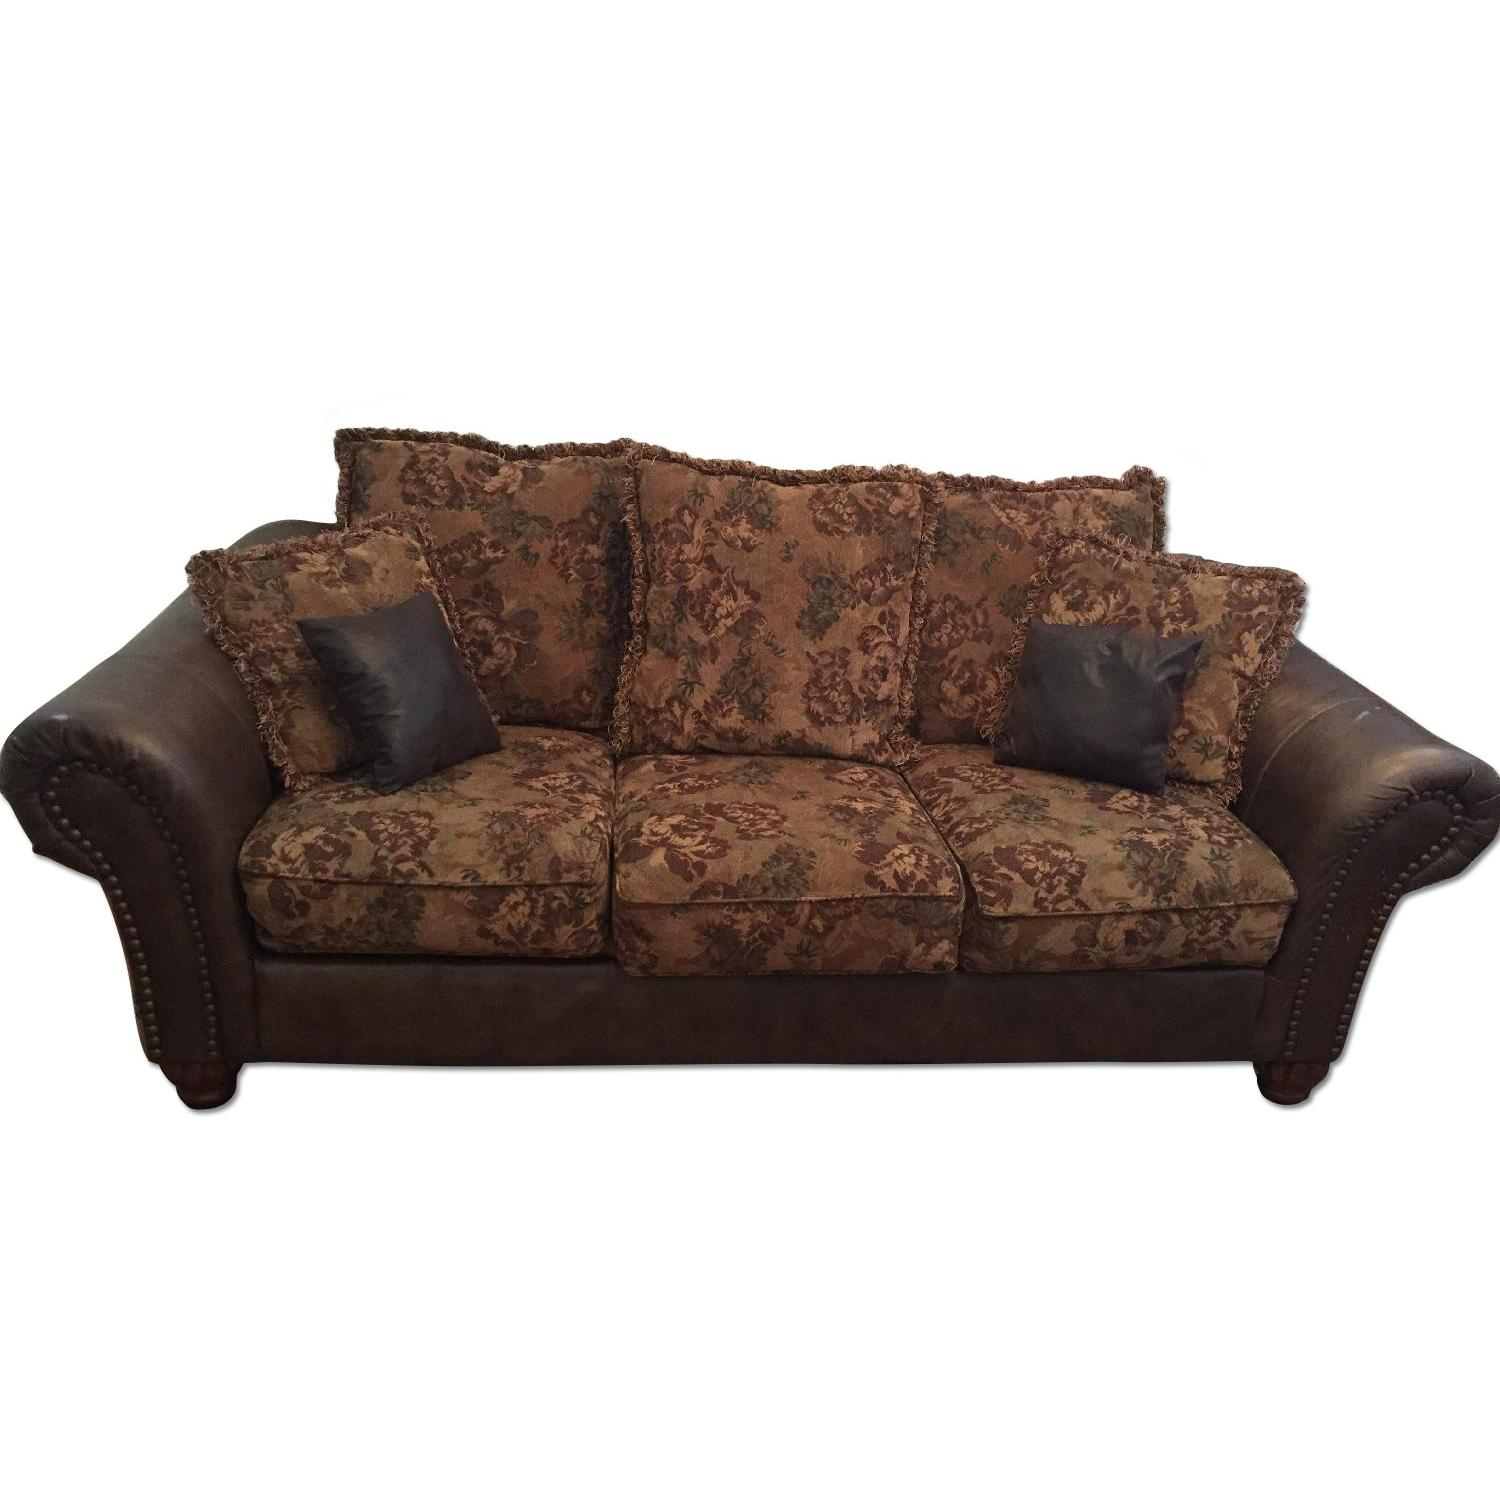 Ashley 3-Seater Leather Upholstered Couch - image-0